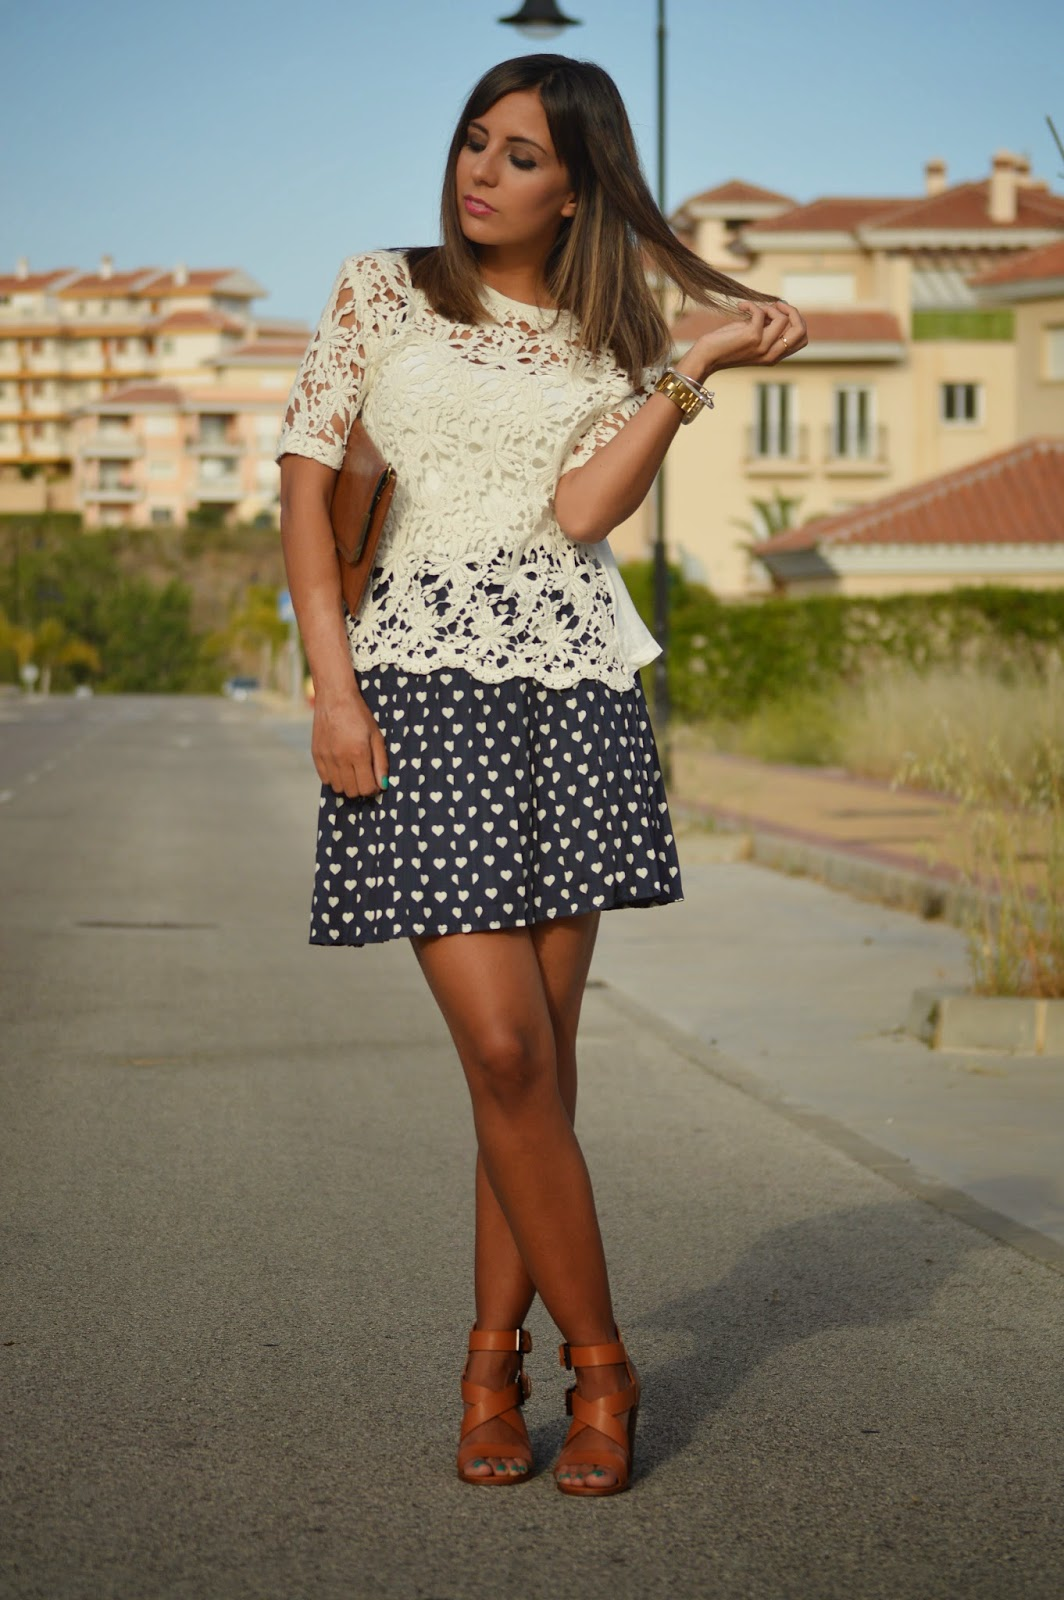 street style style fashion ootd cristina style fashion blogger malagueña blogger malagueña outfit look zara chic casual summer moda mood trend love girl me inspiration plaid skirt beauty styles stylish lovely nice